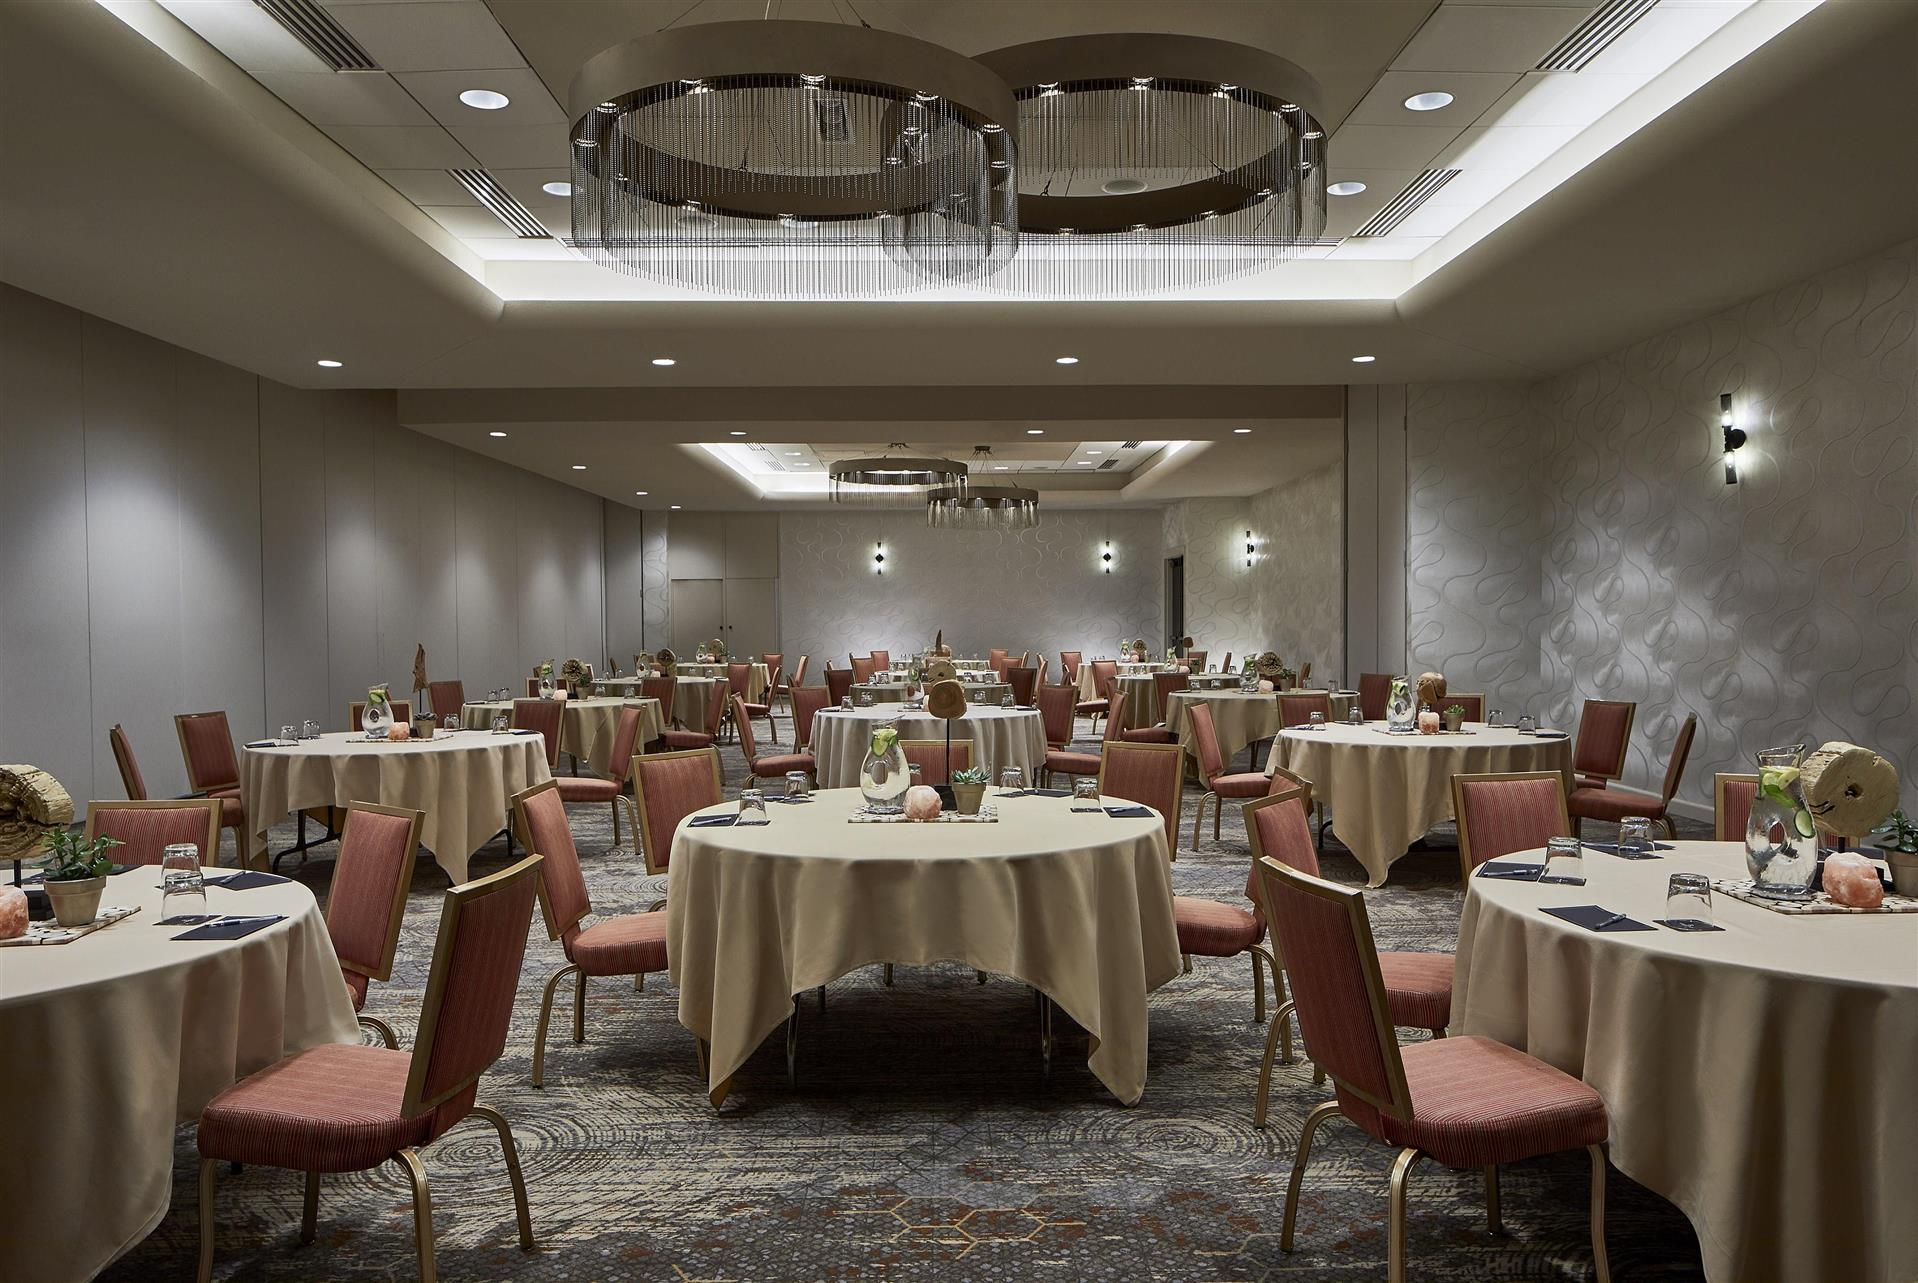 10 unexpected places to decorate your home with indoor.htm meetings and events at renaissance asheville hotel  asheville  nc  us  renaissance asheville hotel